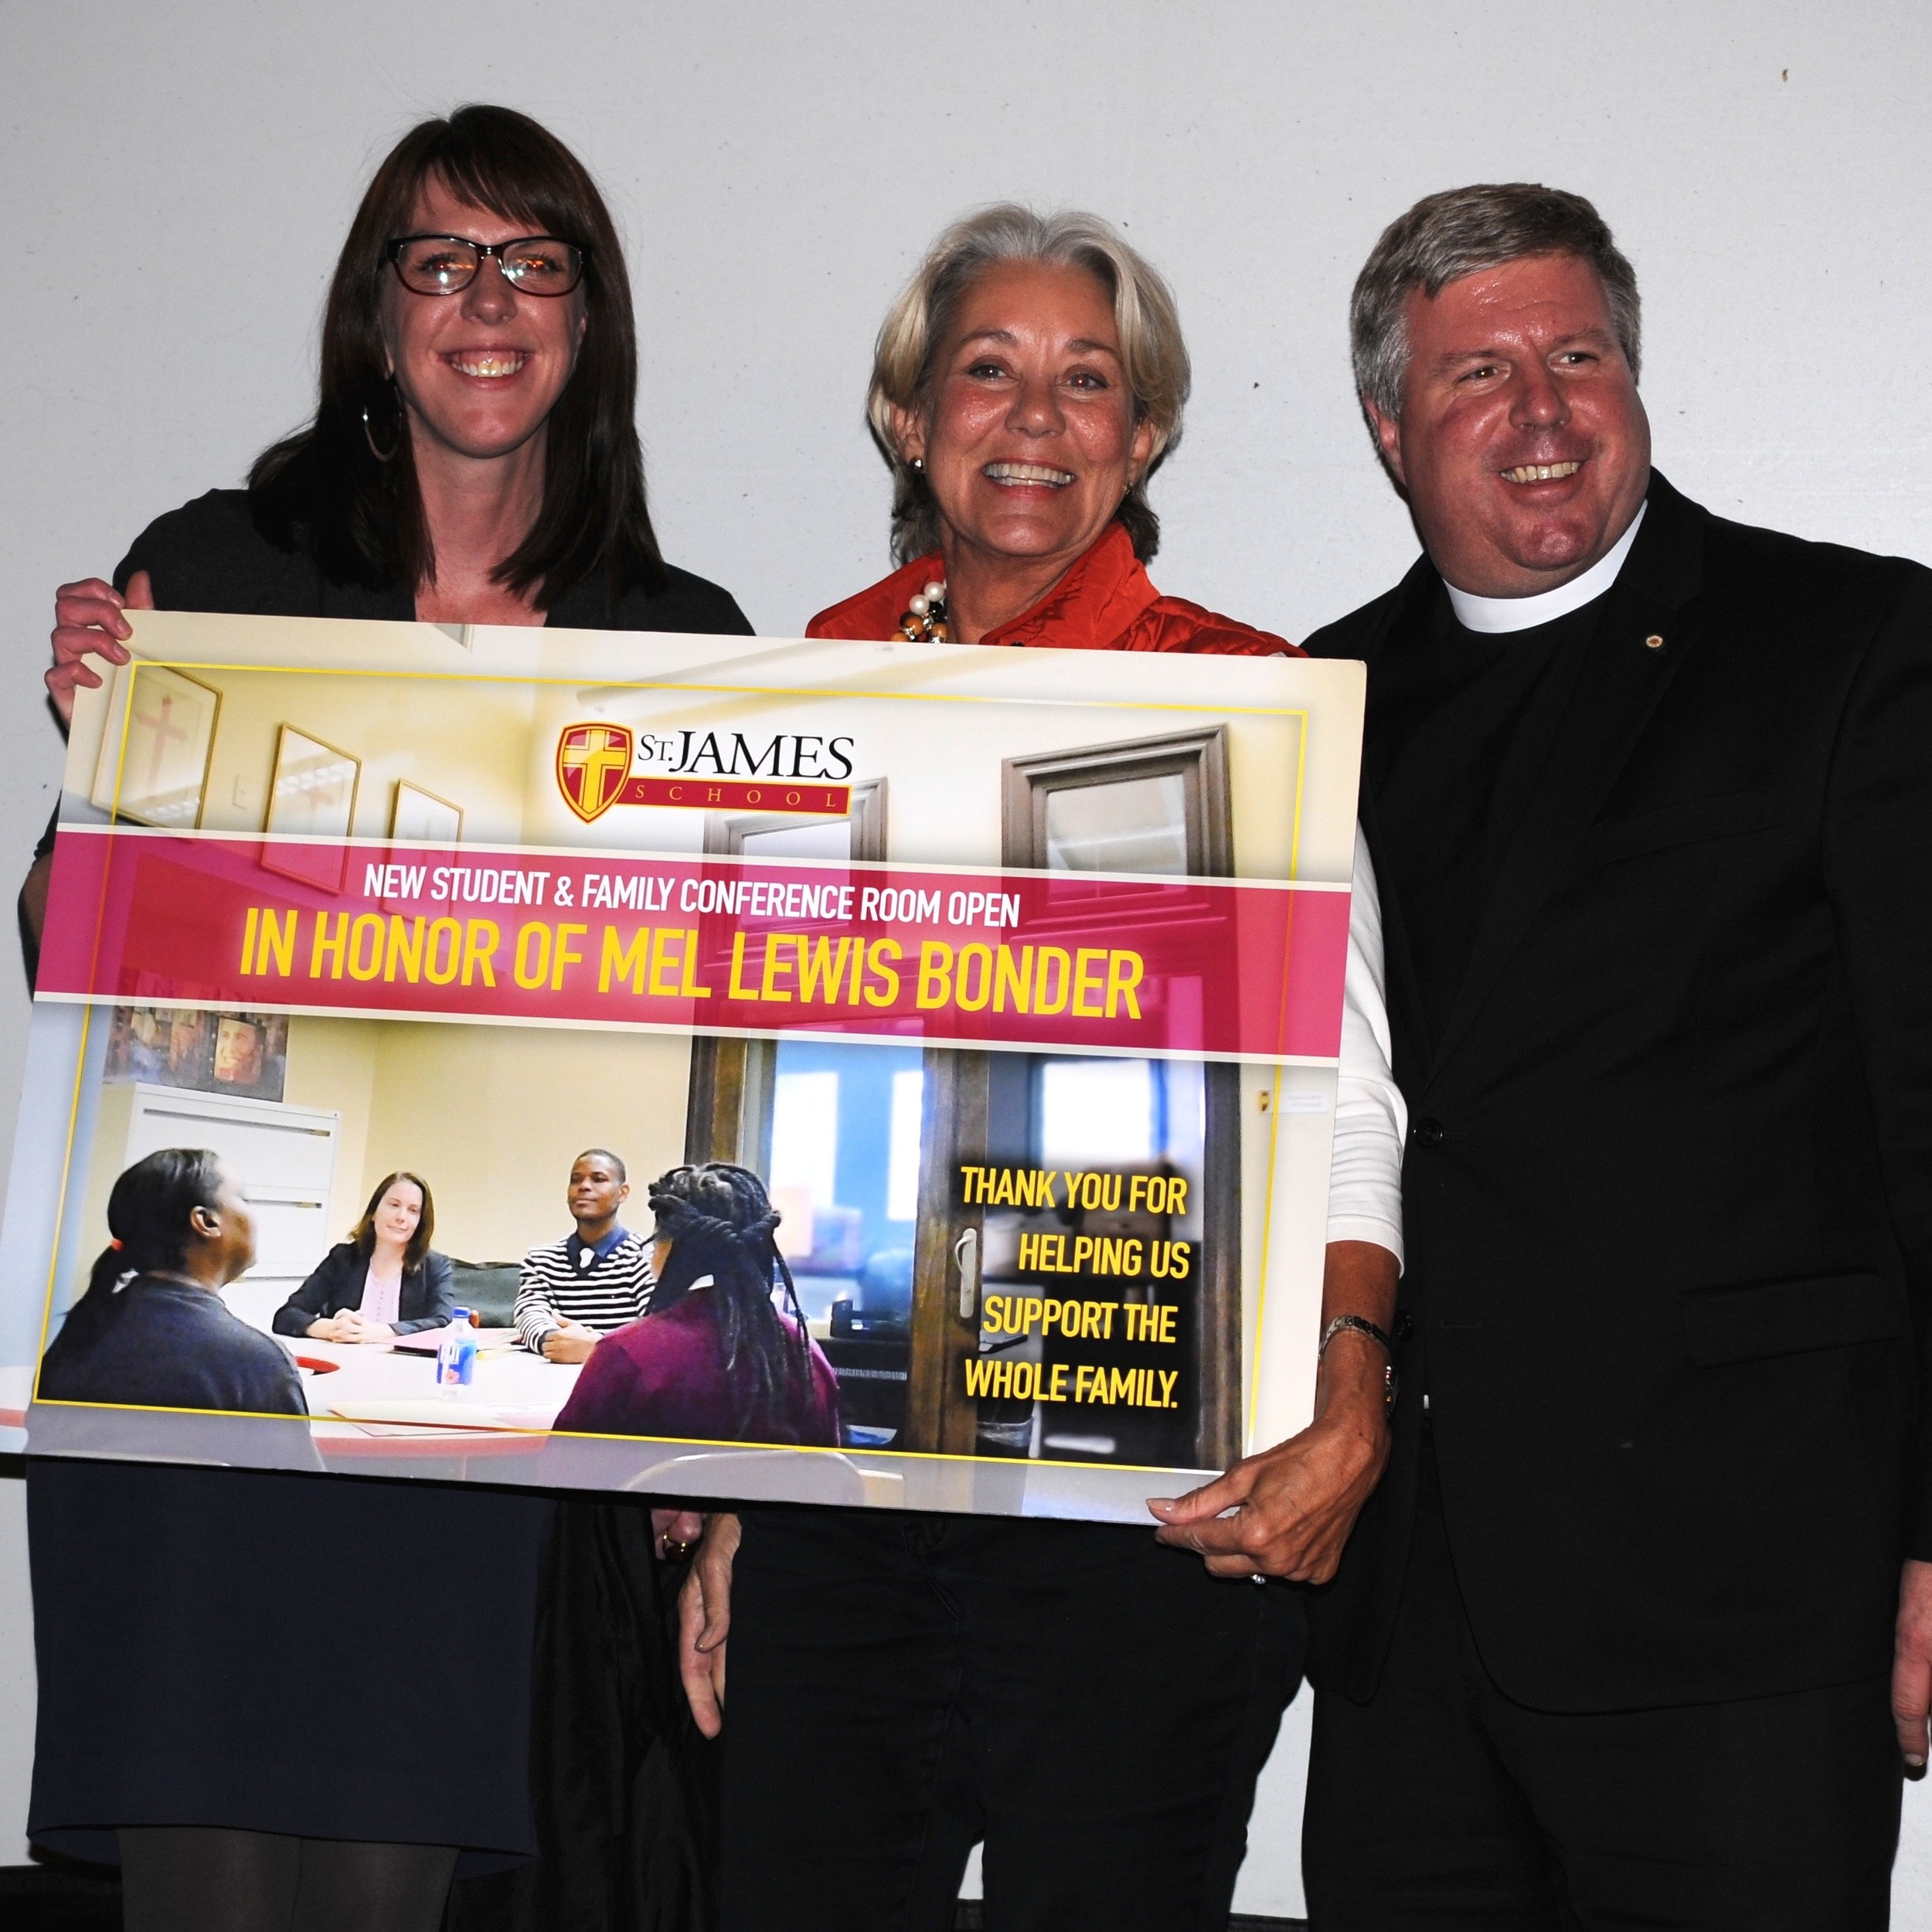 St. James School's Advancement Director Angie McCole and the school's co-founder Rev. Sean Mullen make a surprise presentation to ECHOES co-founder Mel Bonder, announcing that a new student/family conference room will be named in her honor.